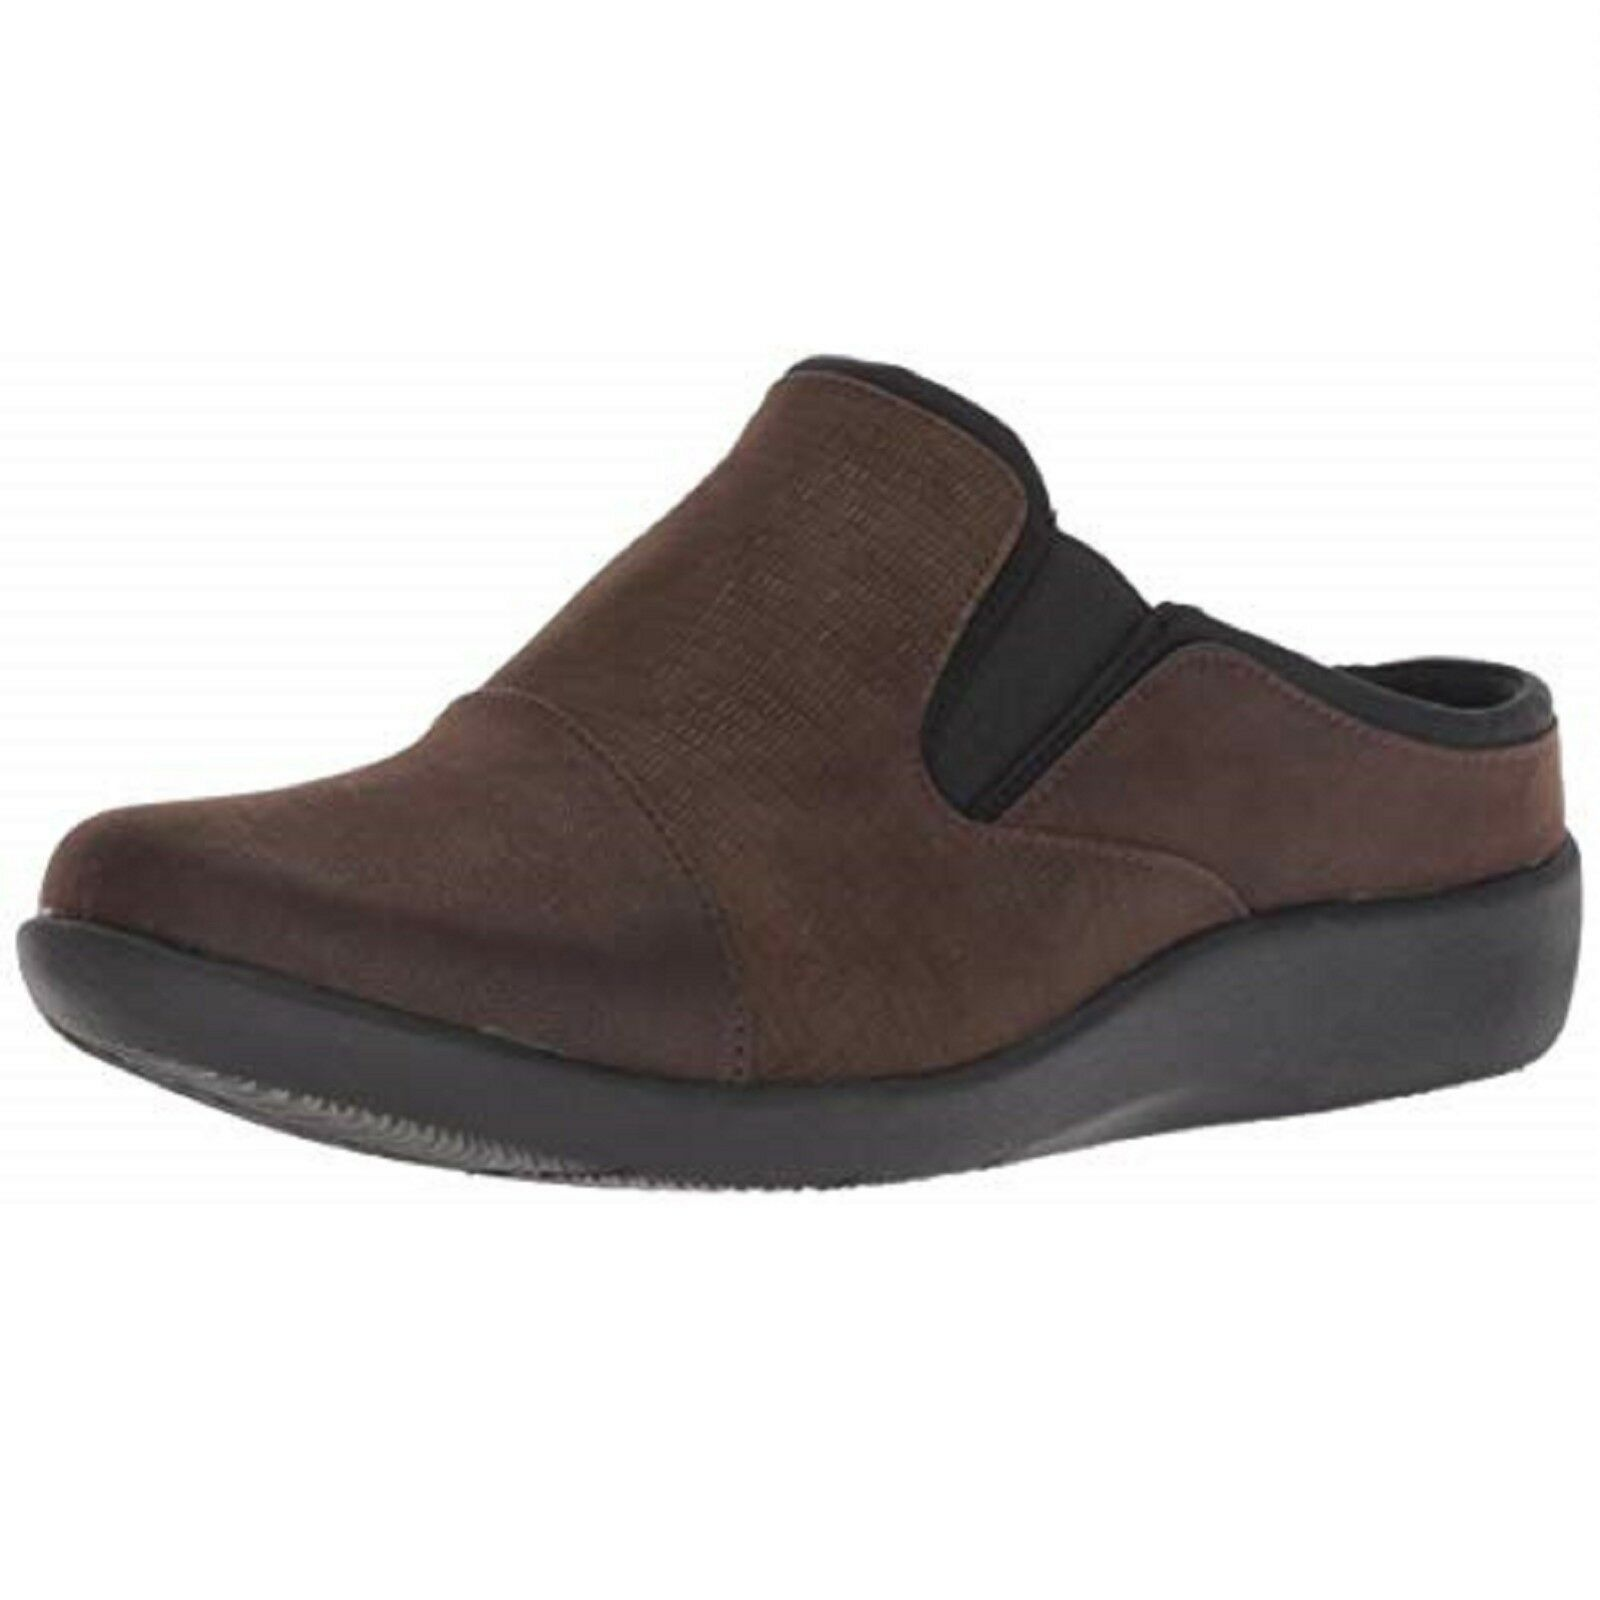 Women's Clarks SILLIAN FREE 26138020 Dark Brown SHOES